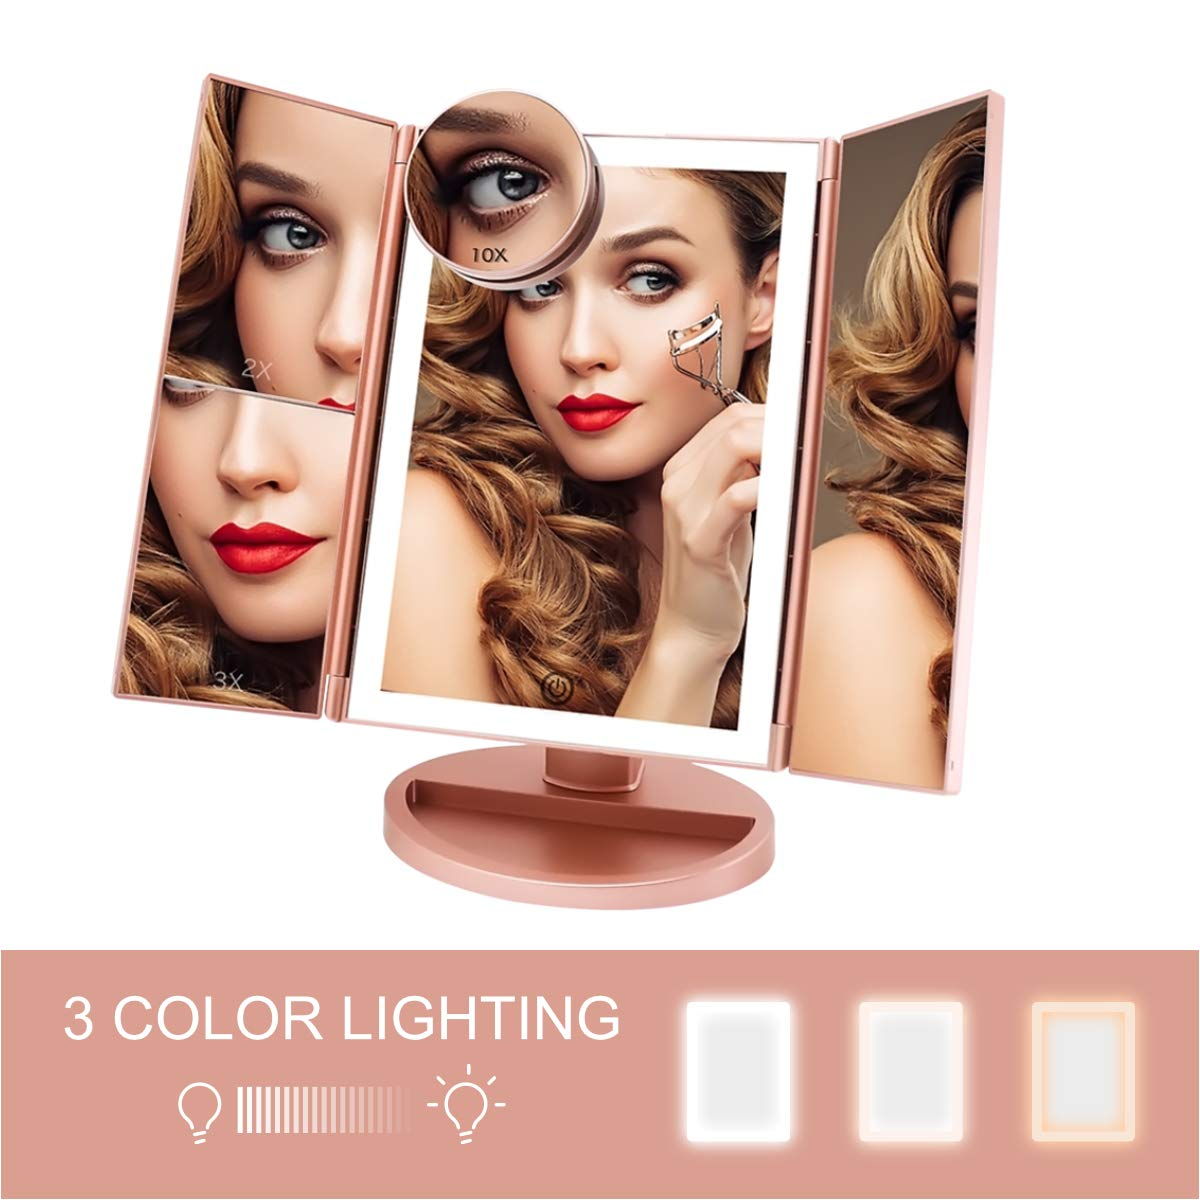 FASCINATE Trifold Lighted Makeup Mirror 3 Color Lighting 36 LEDs Makeup Vanity Mirror with 10X 3X 2X 1X Magnification, Cord Cordless, 180 Rotation Portable High-Definition Cosmetic Mirror Rose Gold